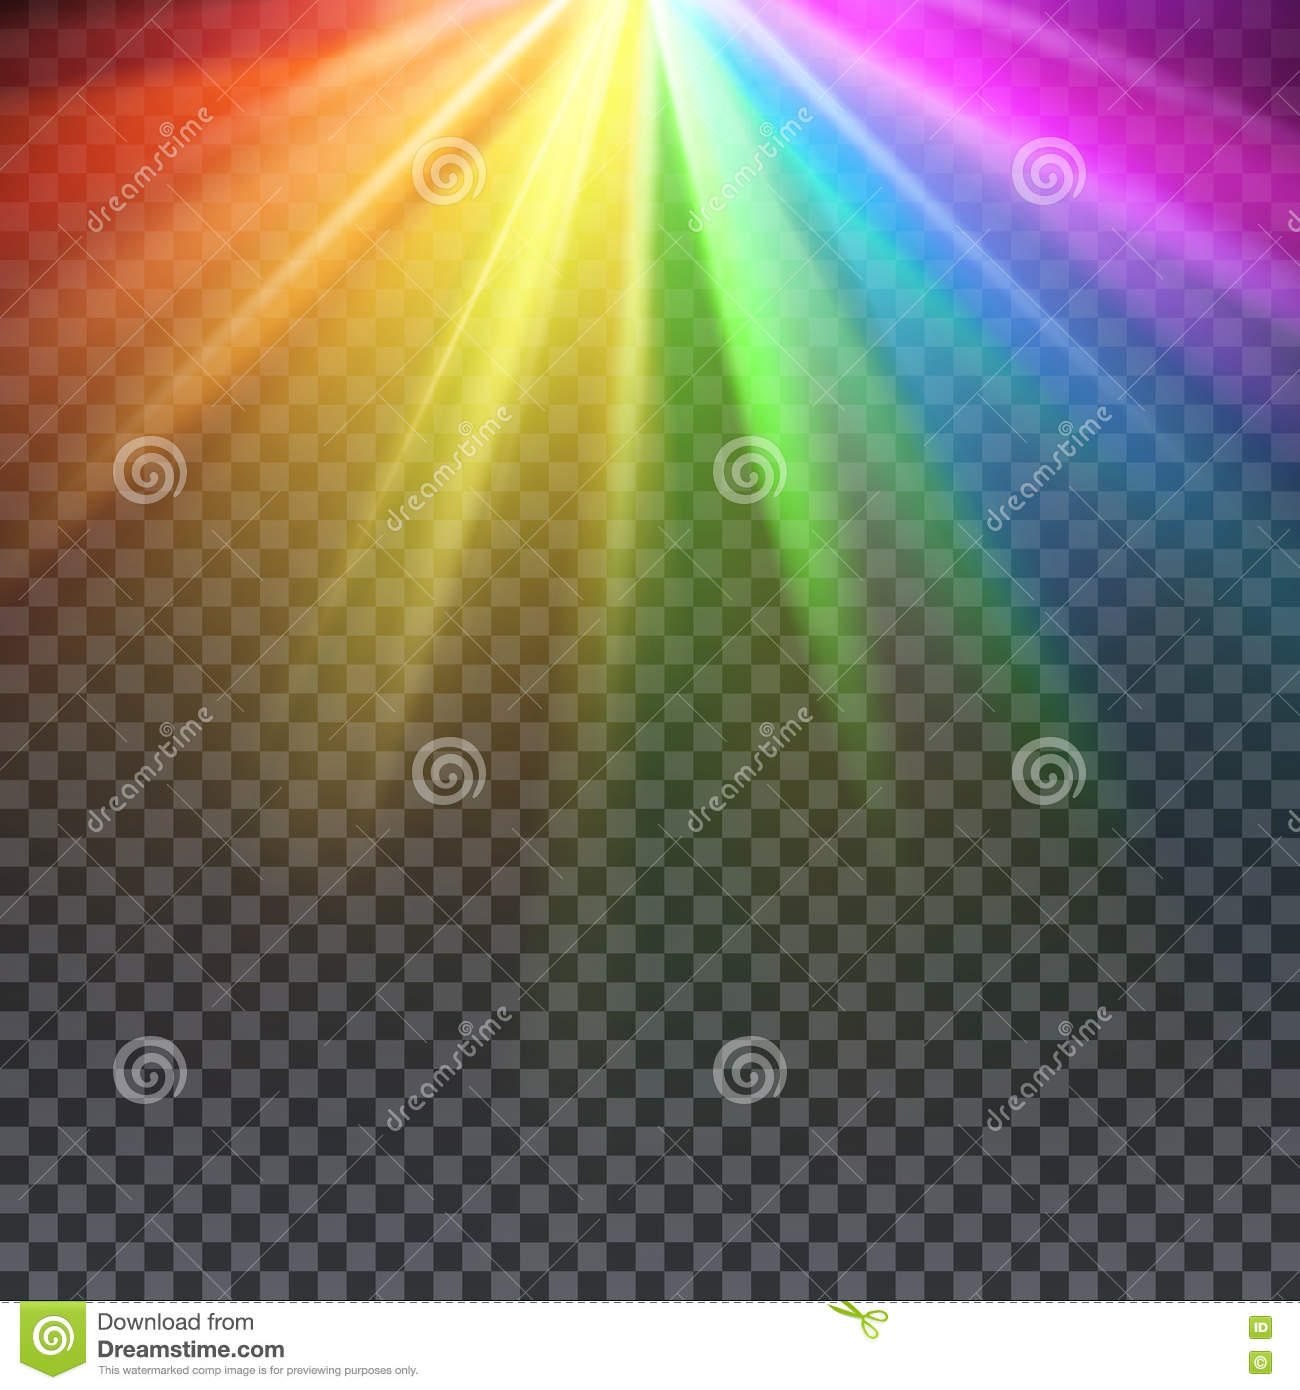 Rainbow glare spectrum with gay pride colors vector illustration